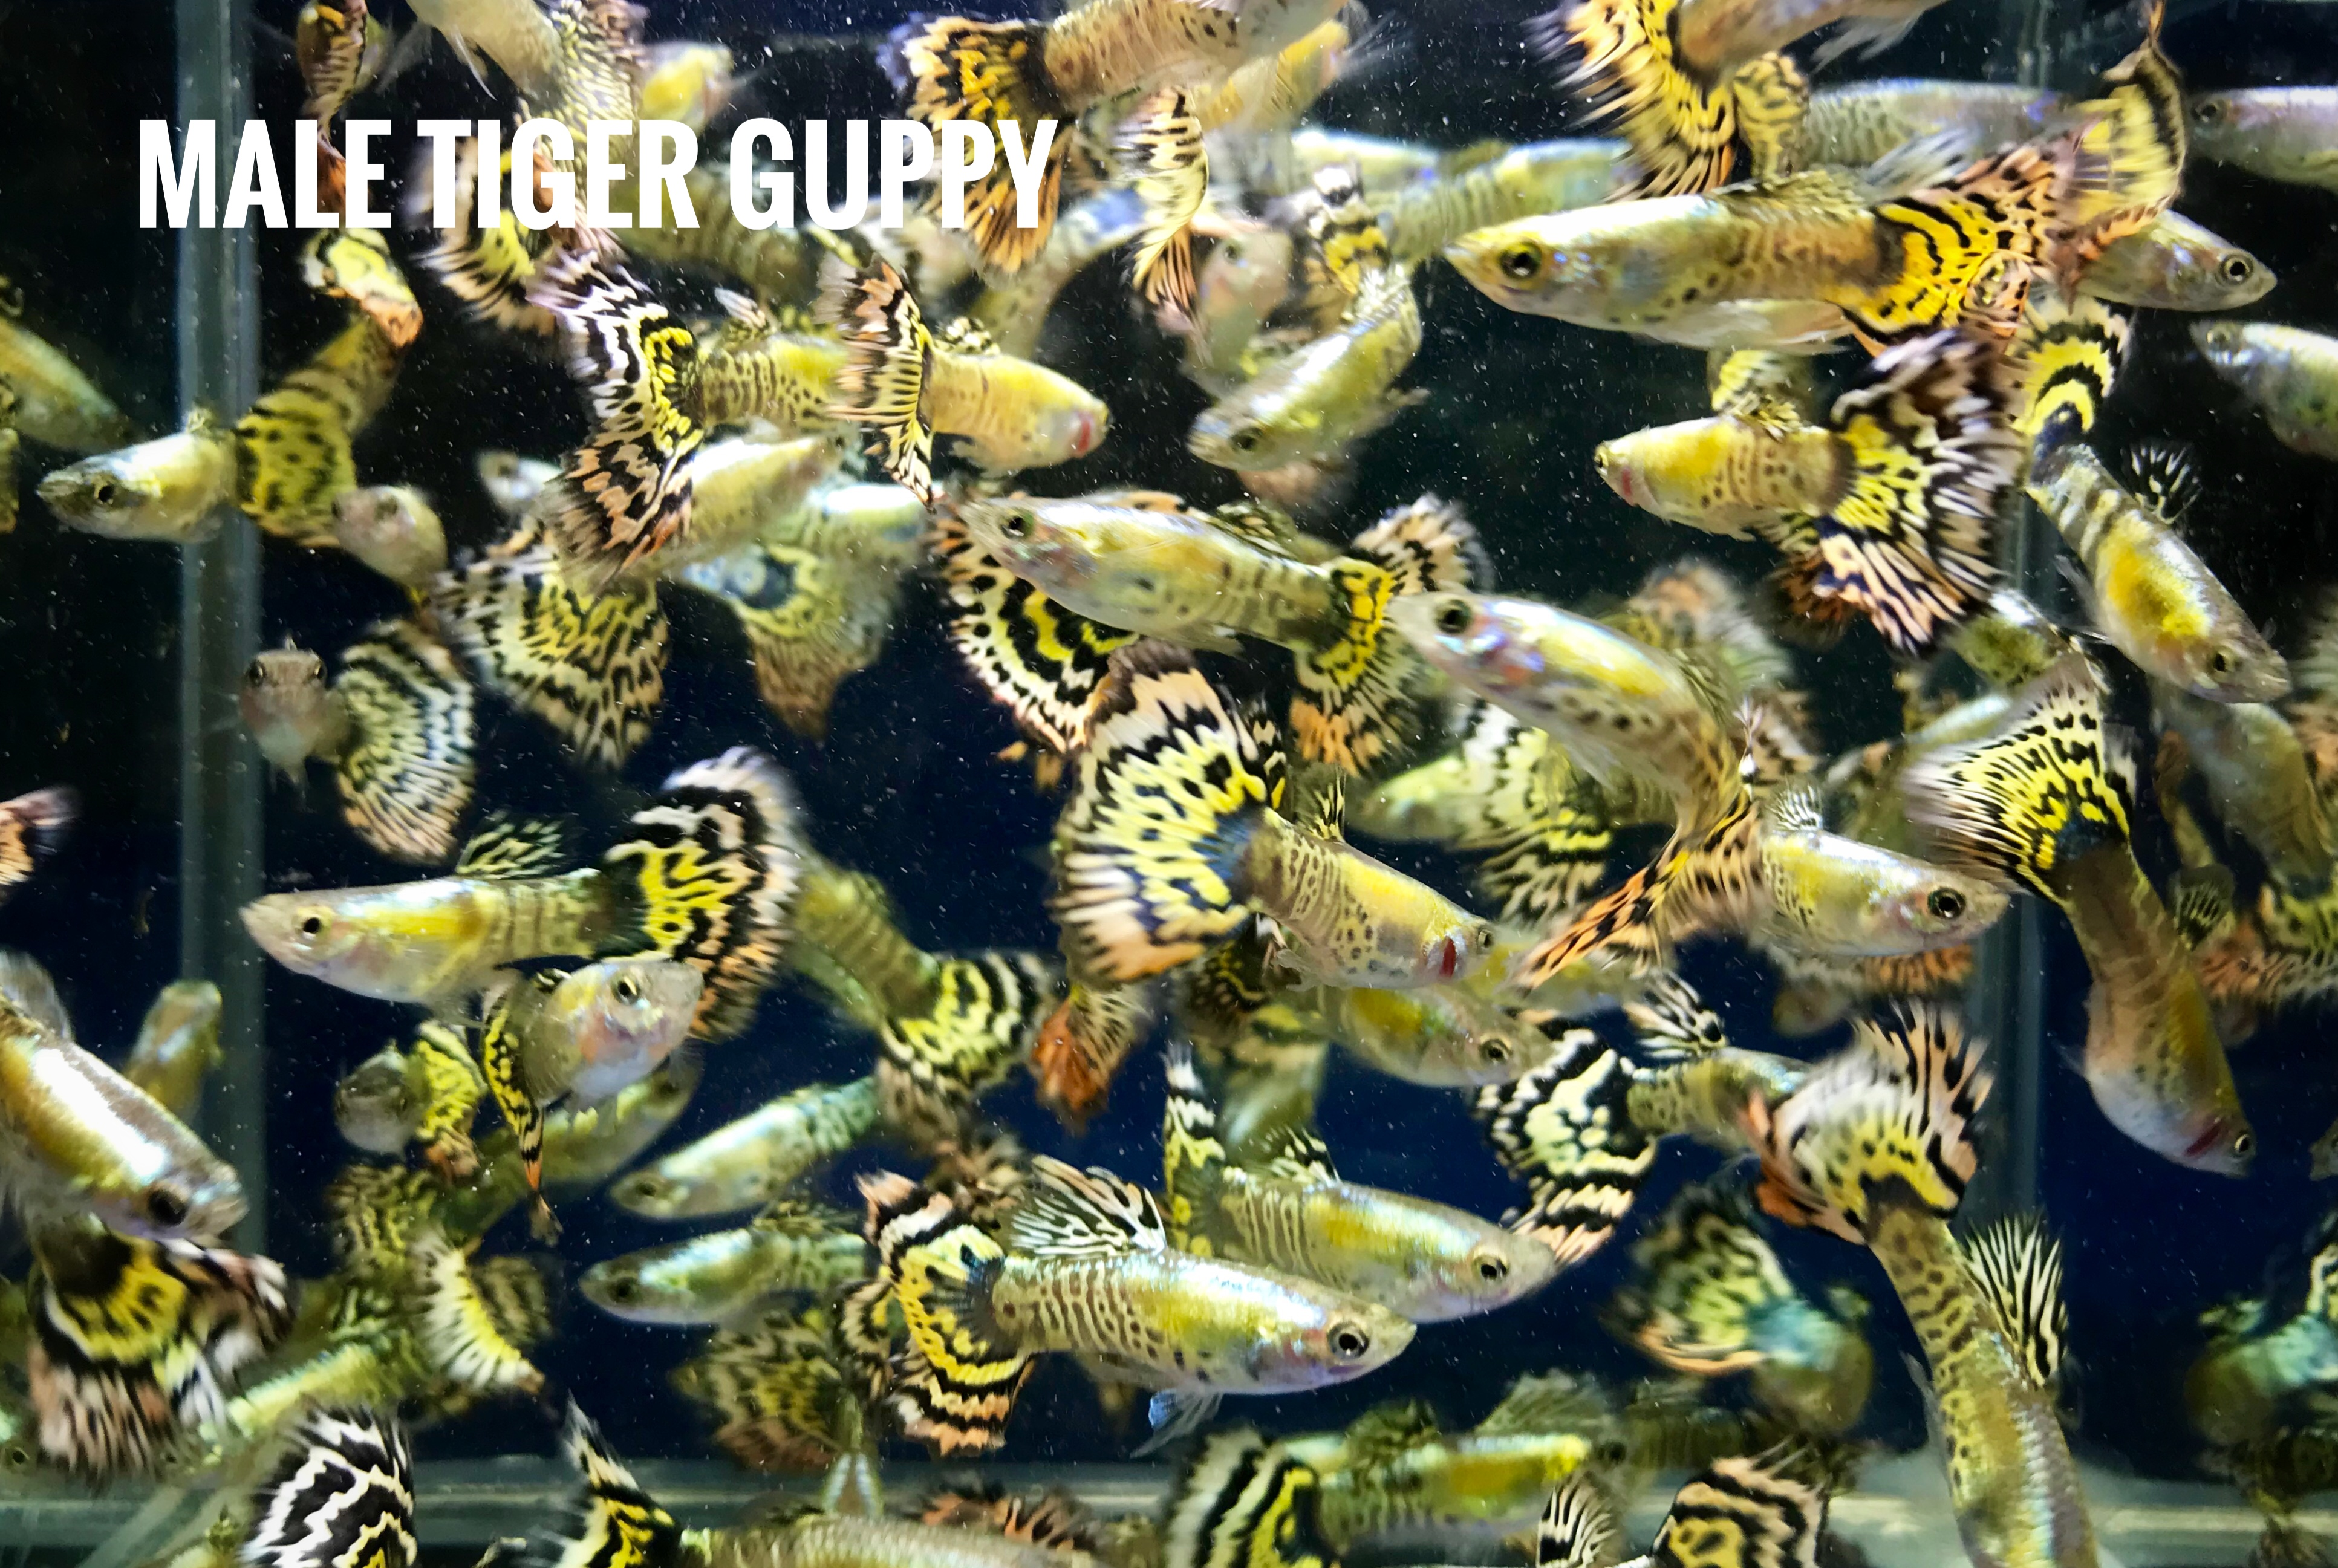 Tigers guppy fish for sale and export